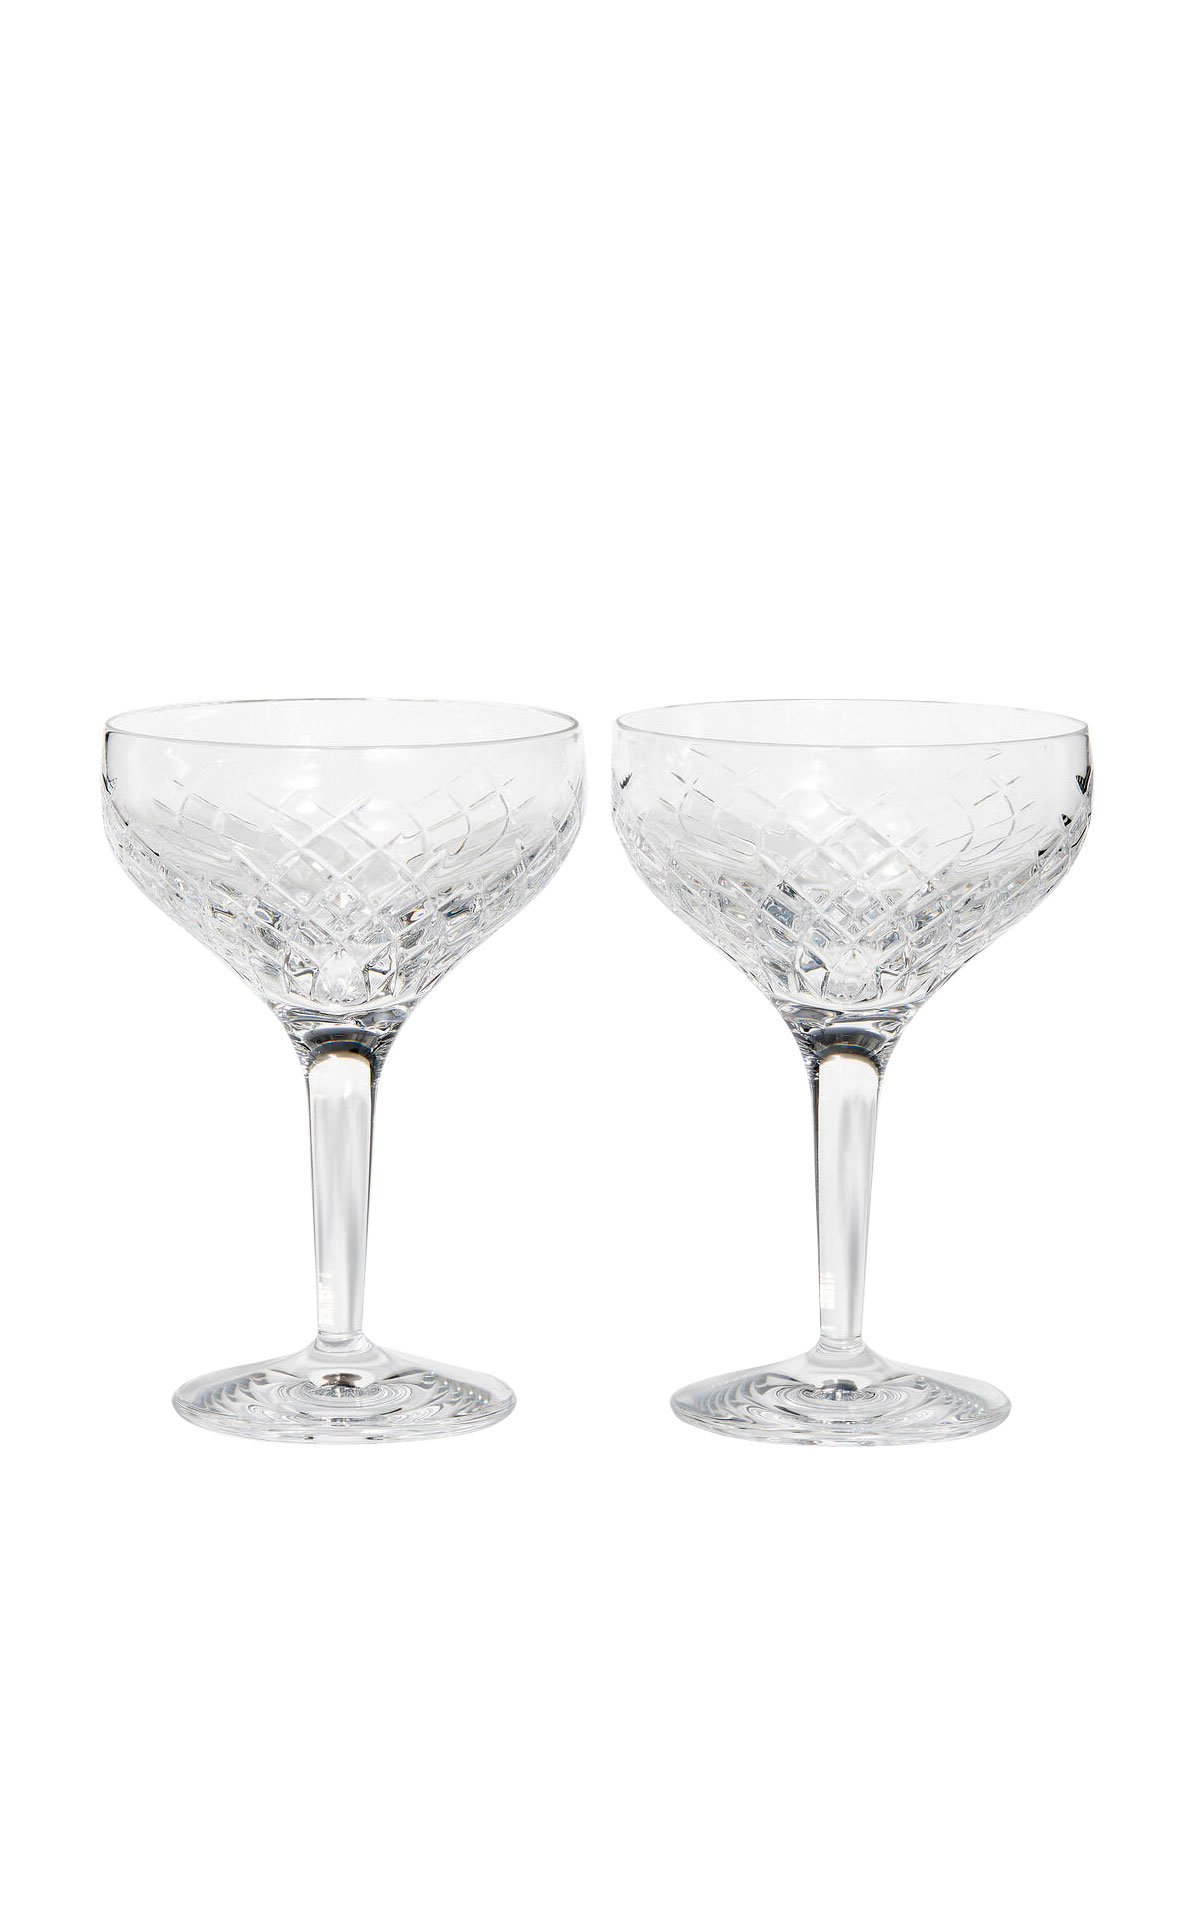 Soho Home Barwell cut crystal champagne coupe, set of two from Bicester Village